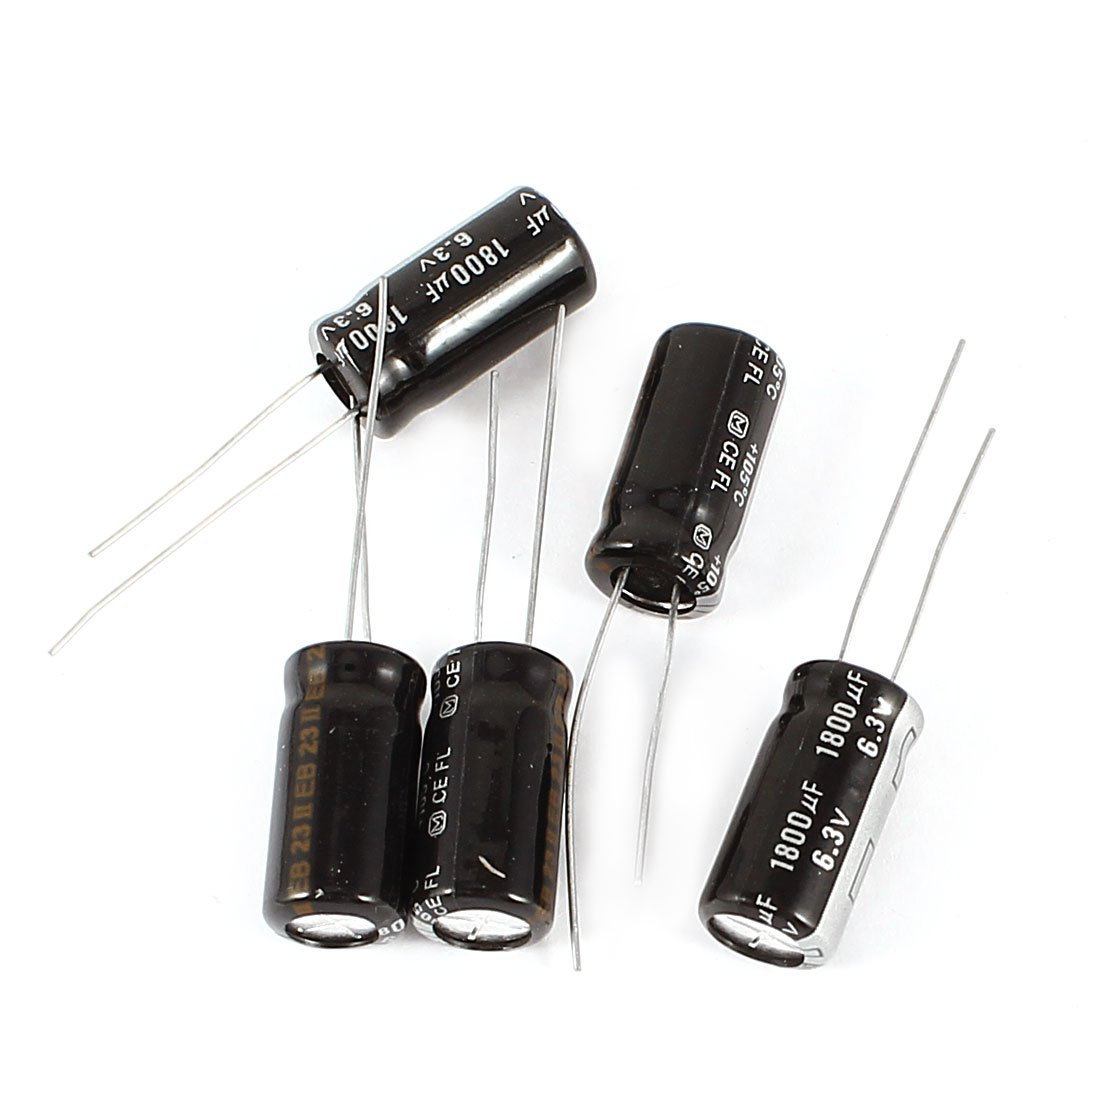 Uxcell a14061600ux0612 5 Piece 1800uF DC 6.3V Radial Electrolytic Capacitor, 8 x 16 mm